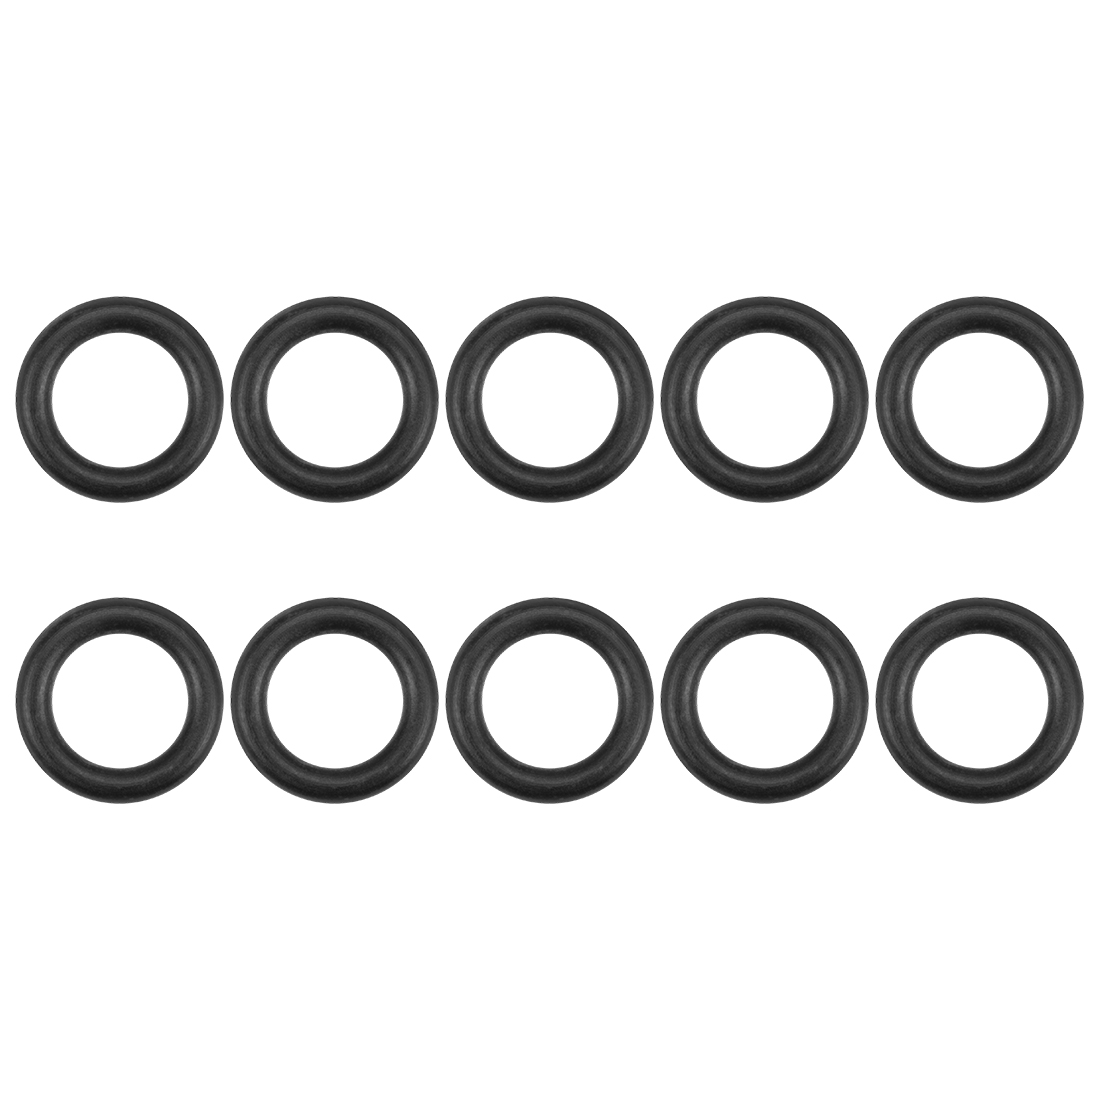 O-Rings Nitrile Rubber 8.75mm x 14.05mm x 2.65mm Round Seal Gasket 10 Pcs